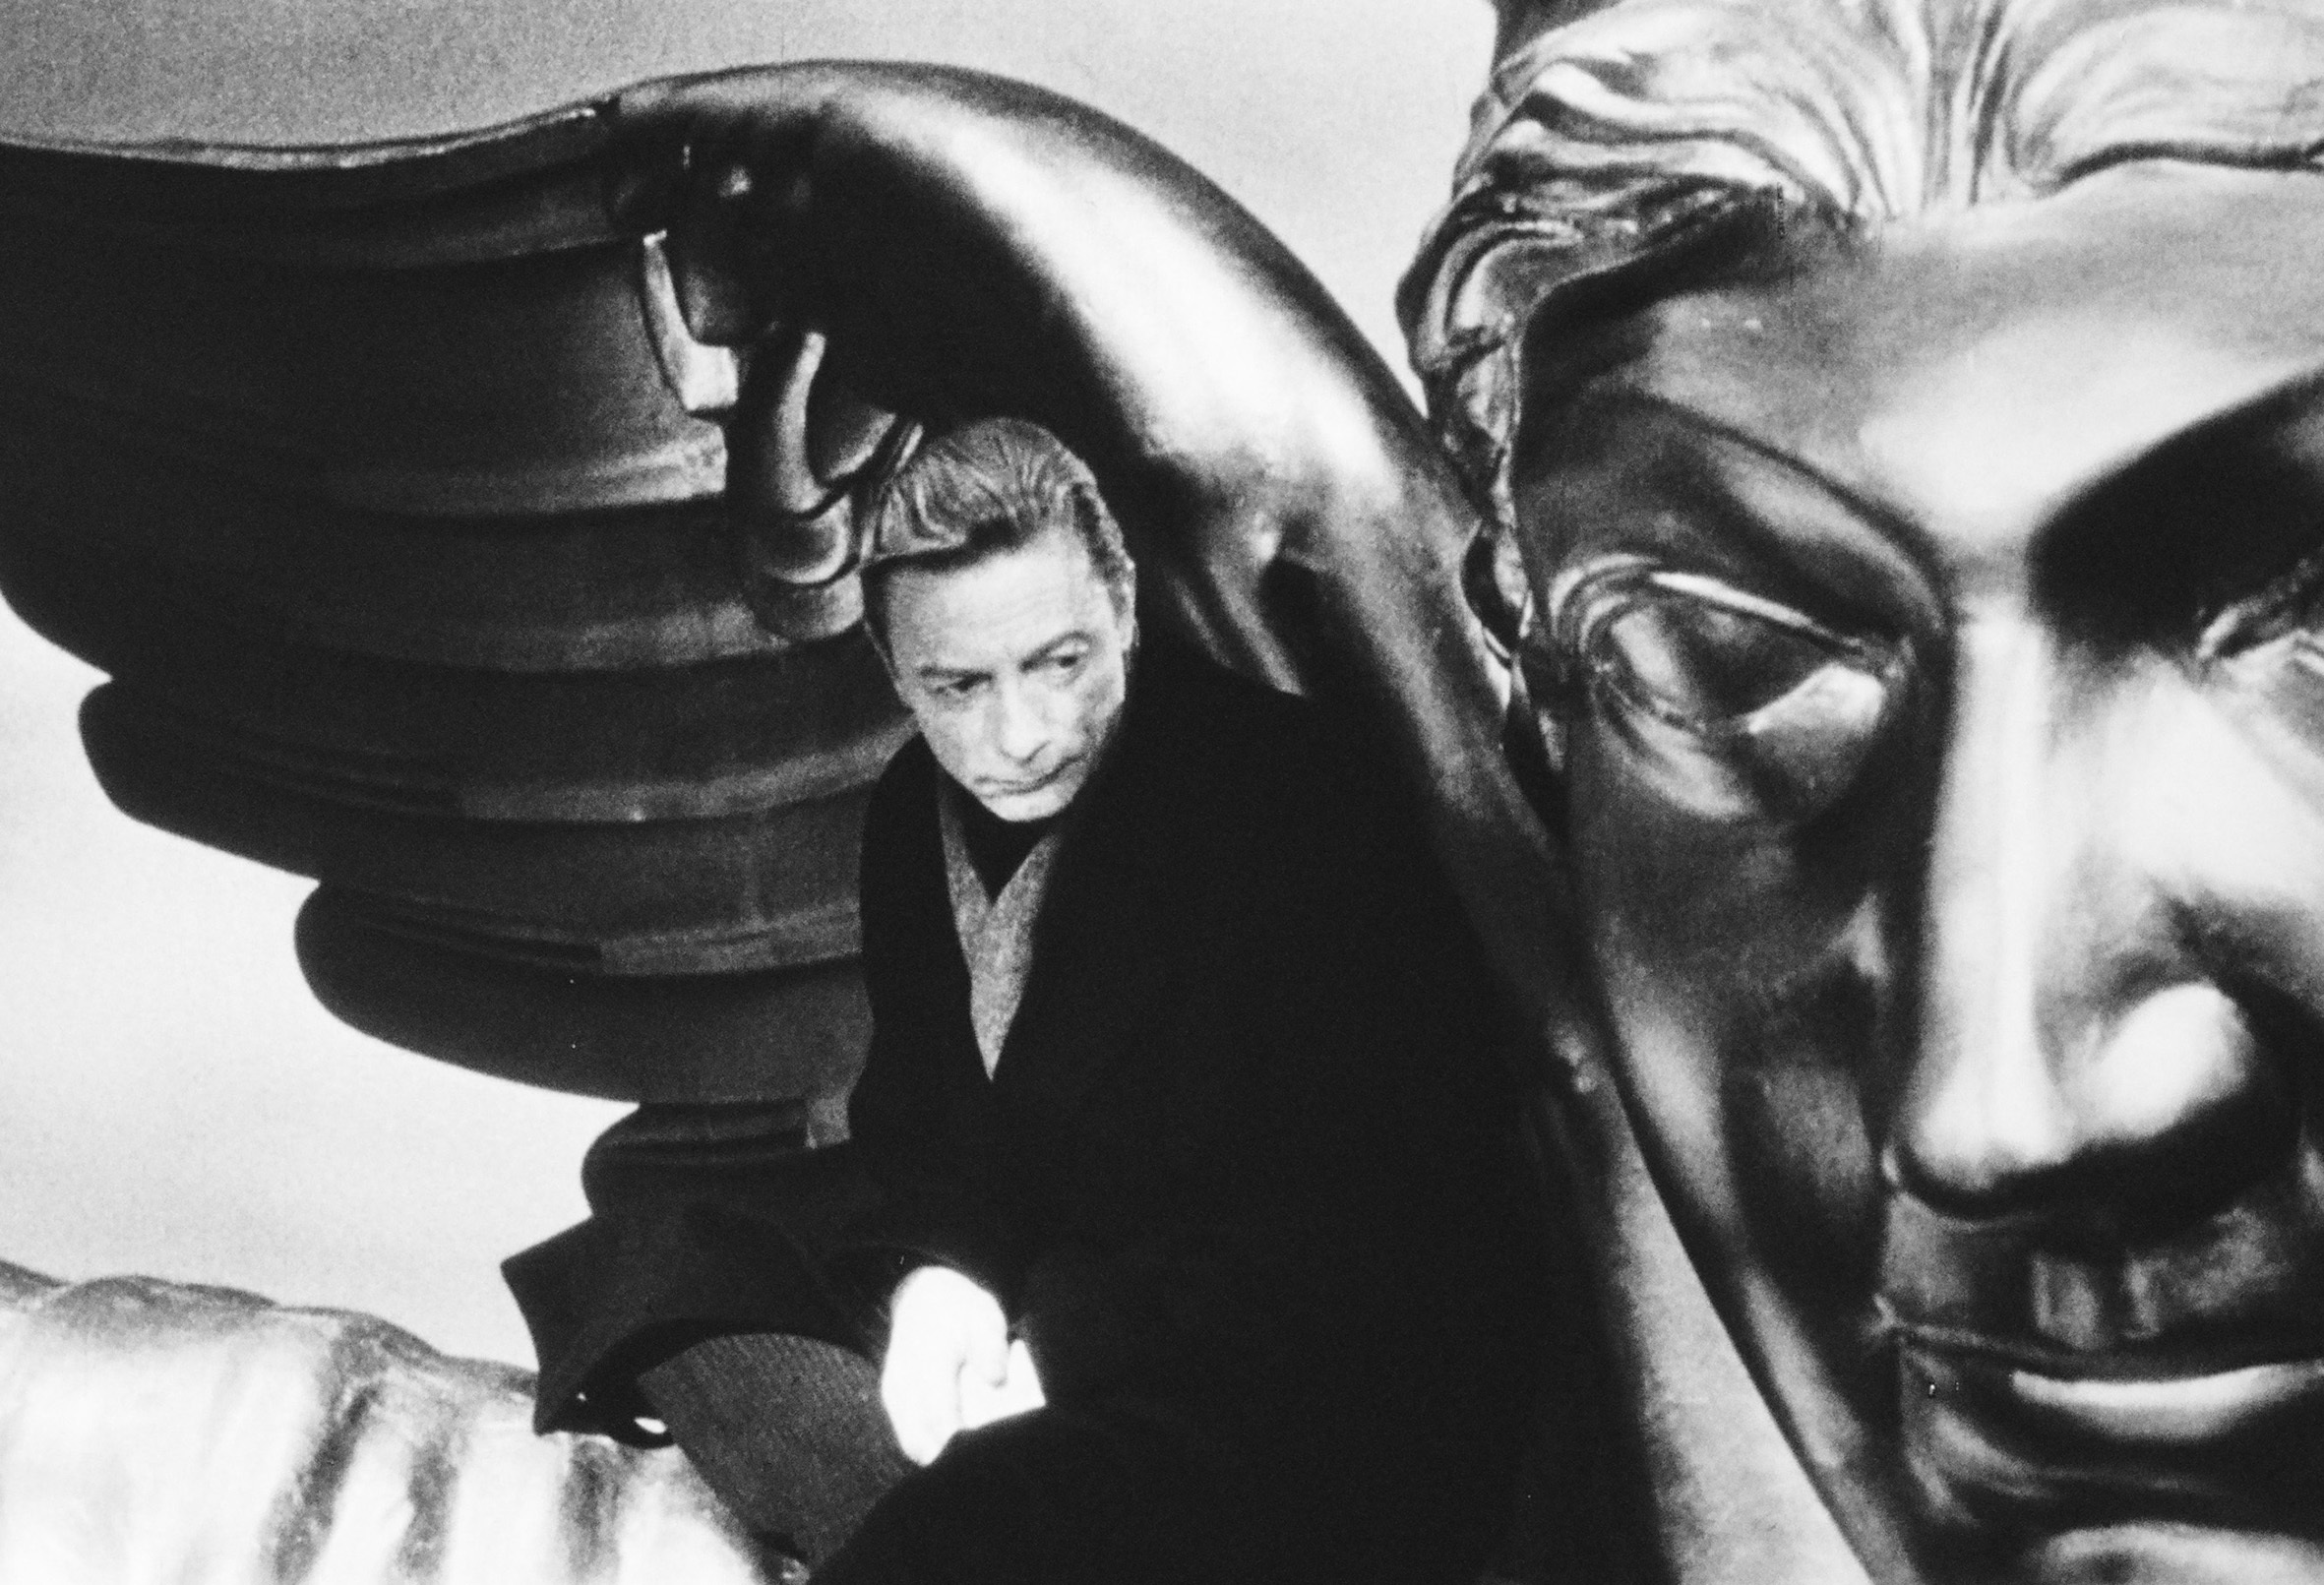 A still from the film 'Wings of Desire'